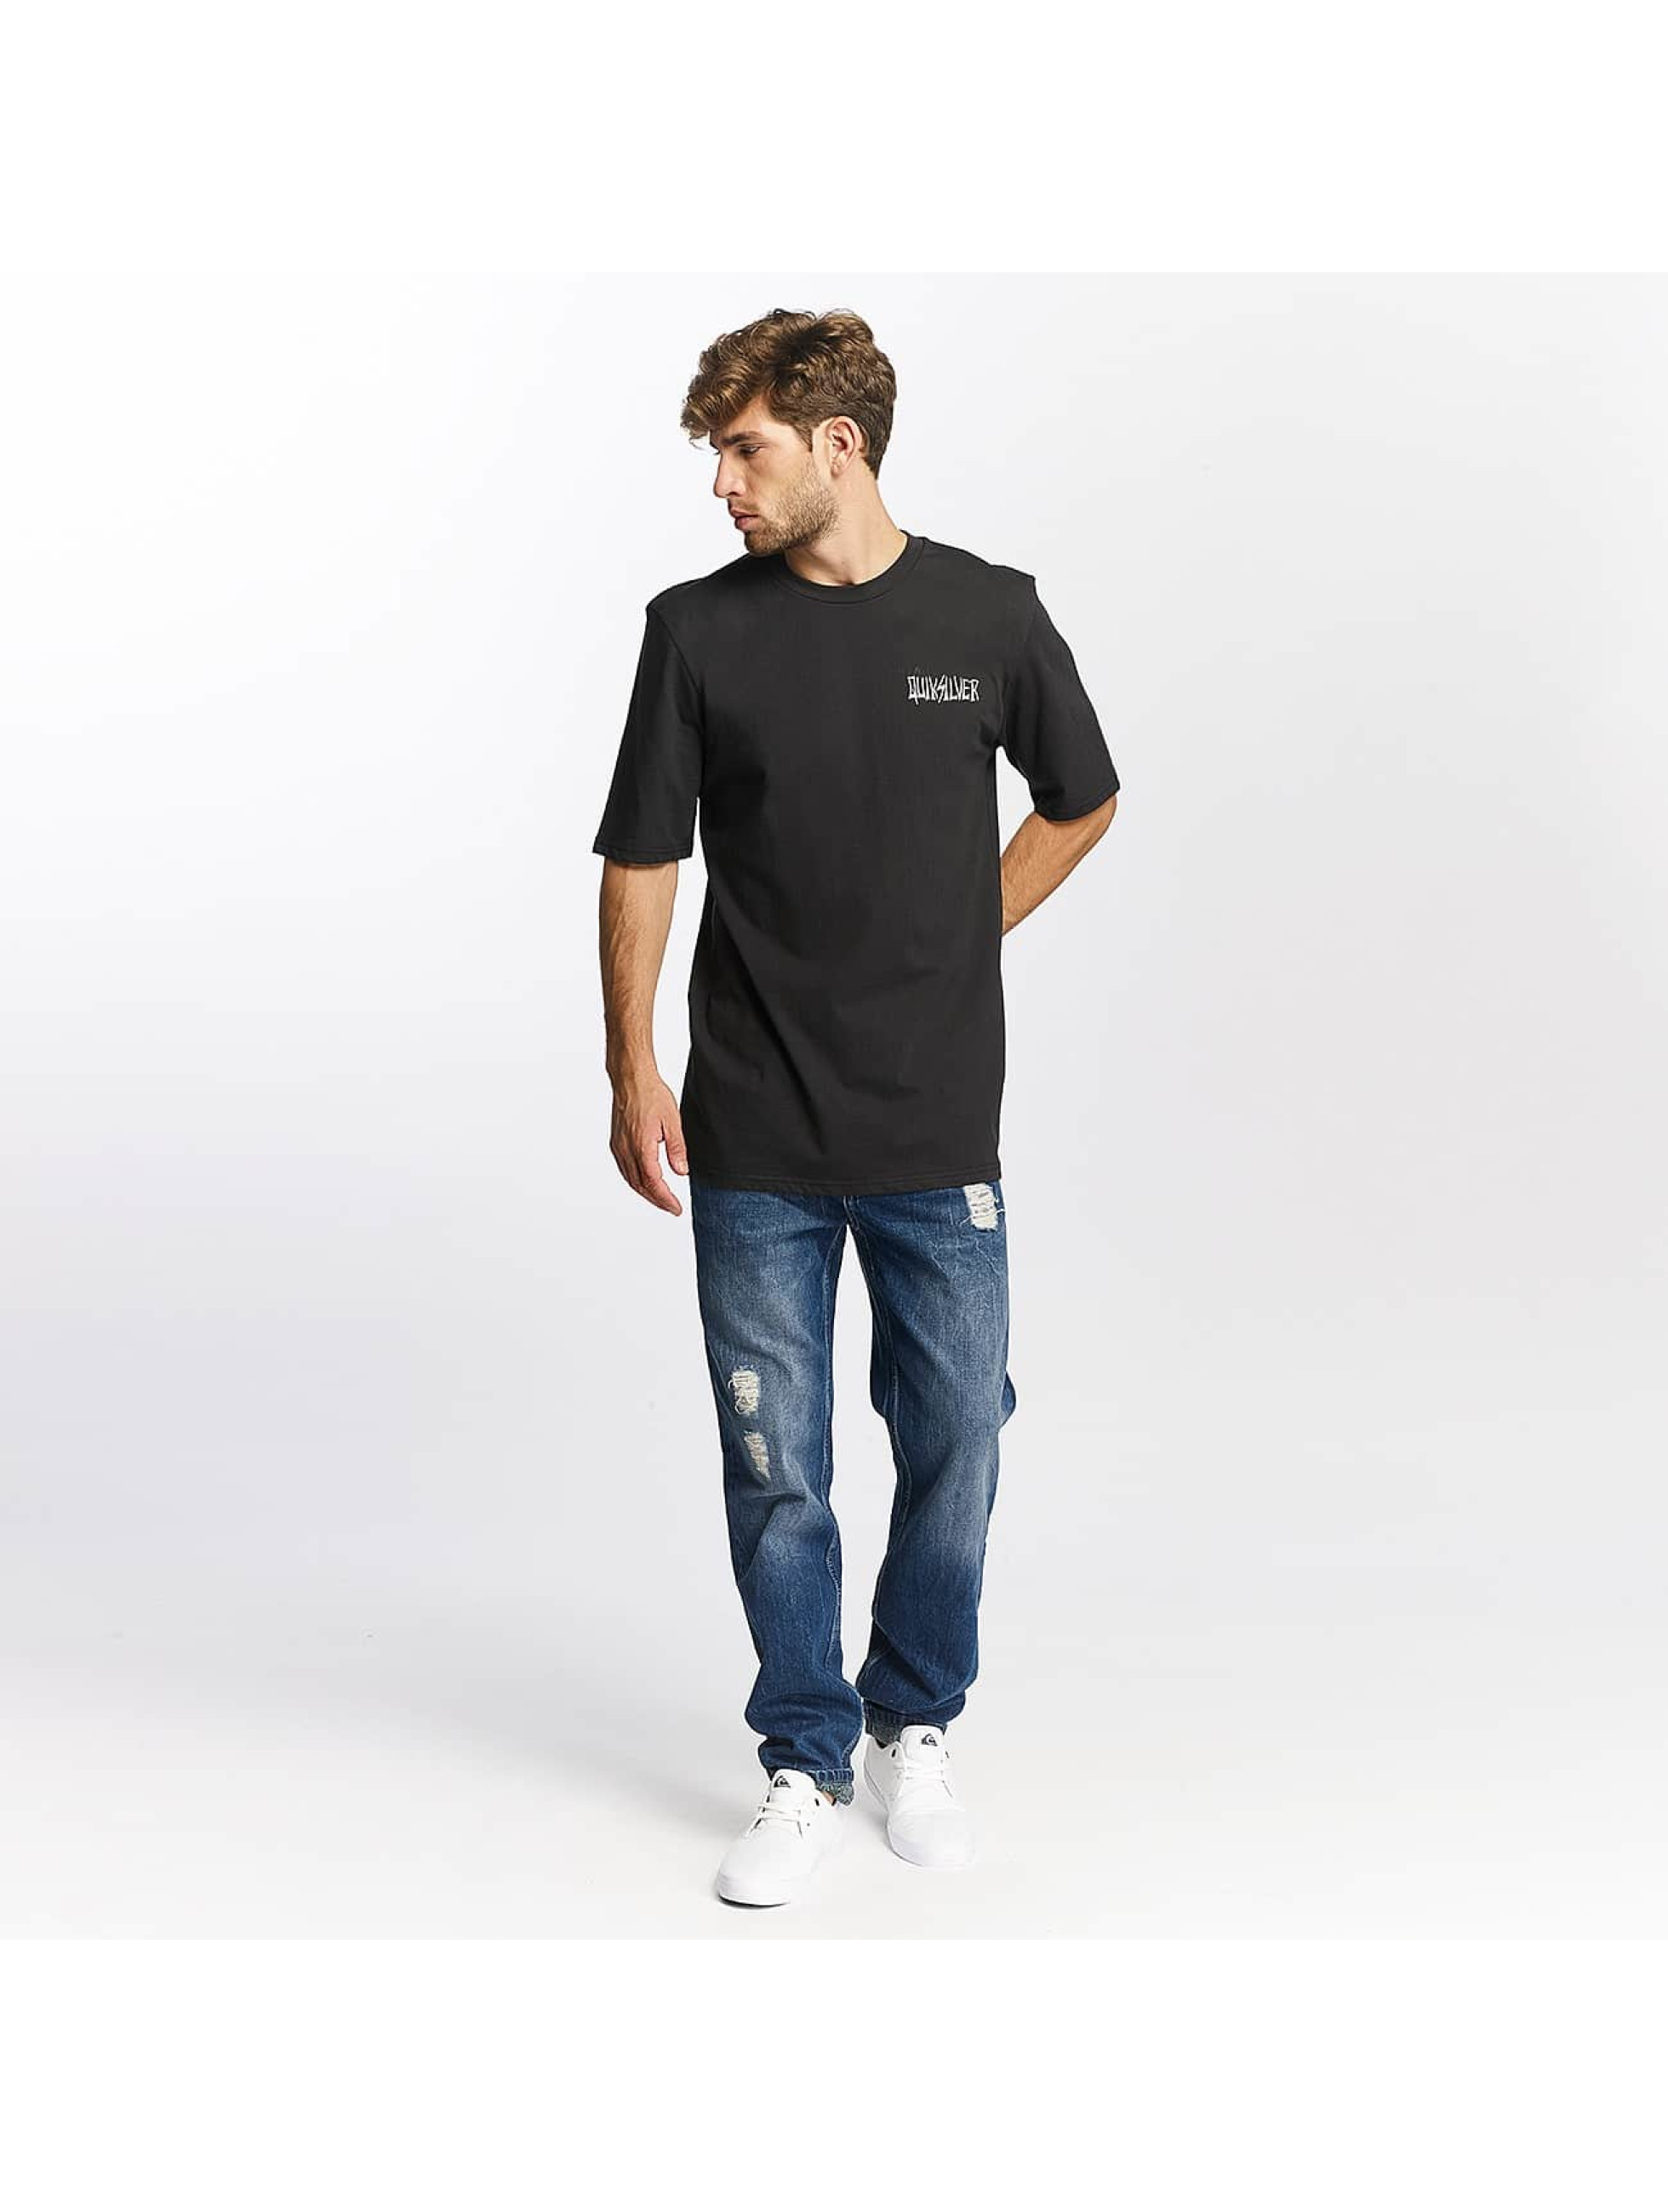 Quiksilver T-shirts Neon Tendencies sort